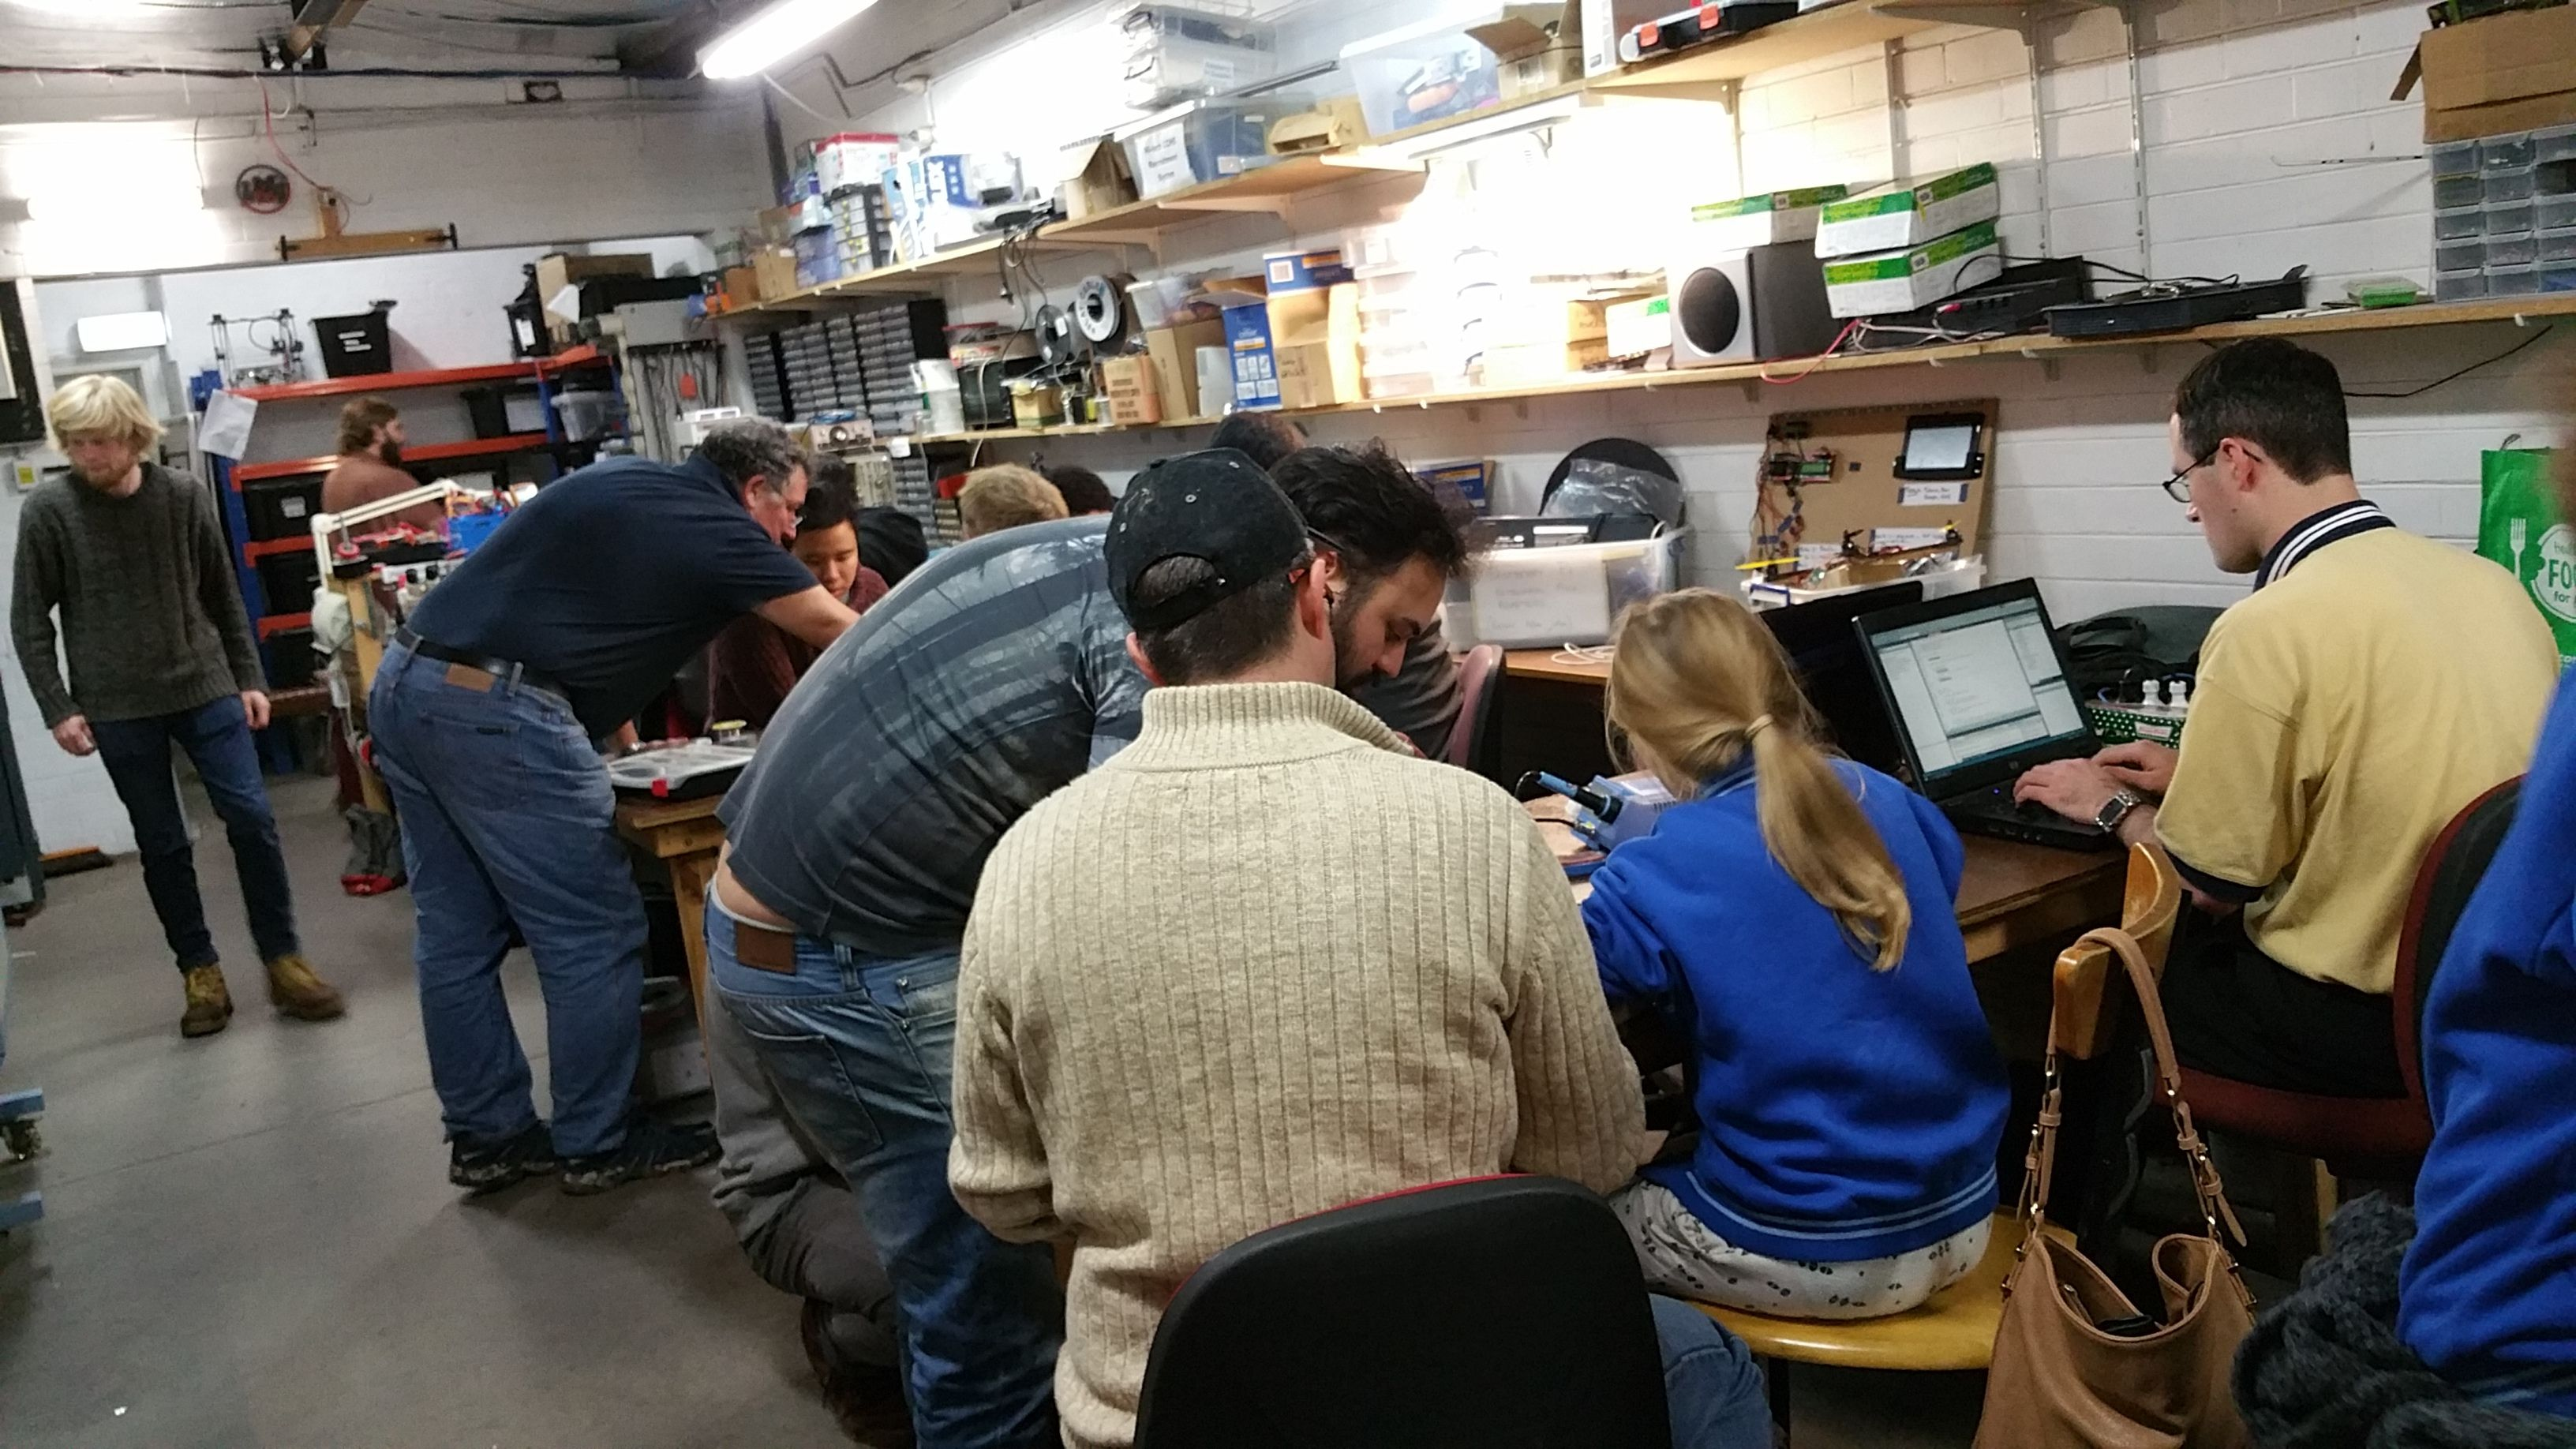 Connected Community HackerSpace (Melbourne)